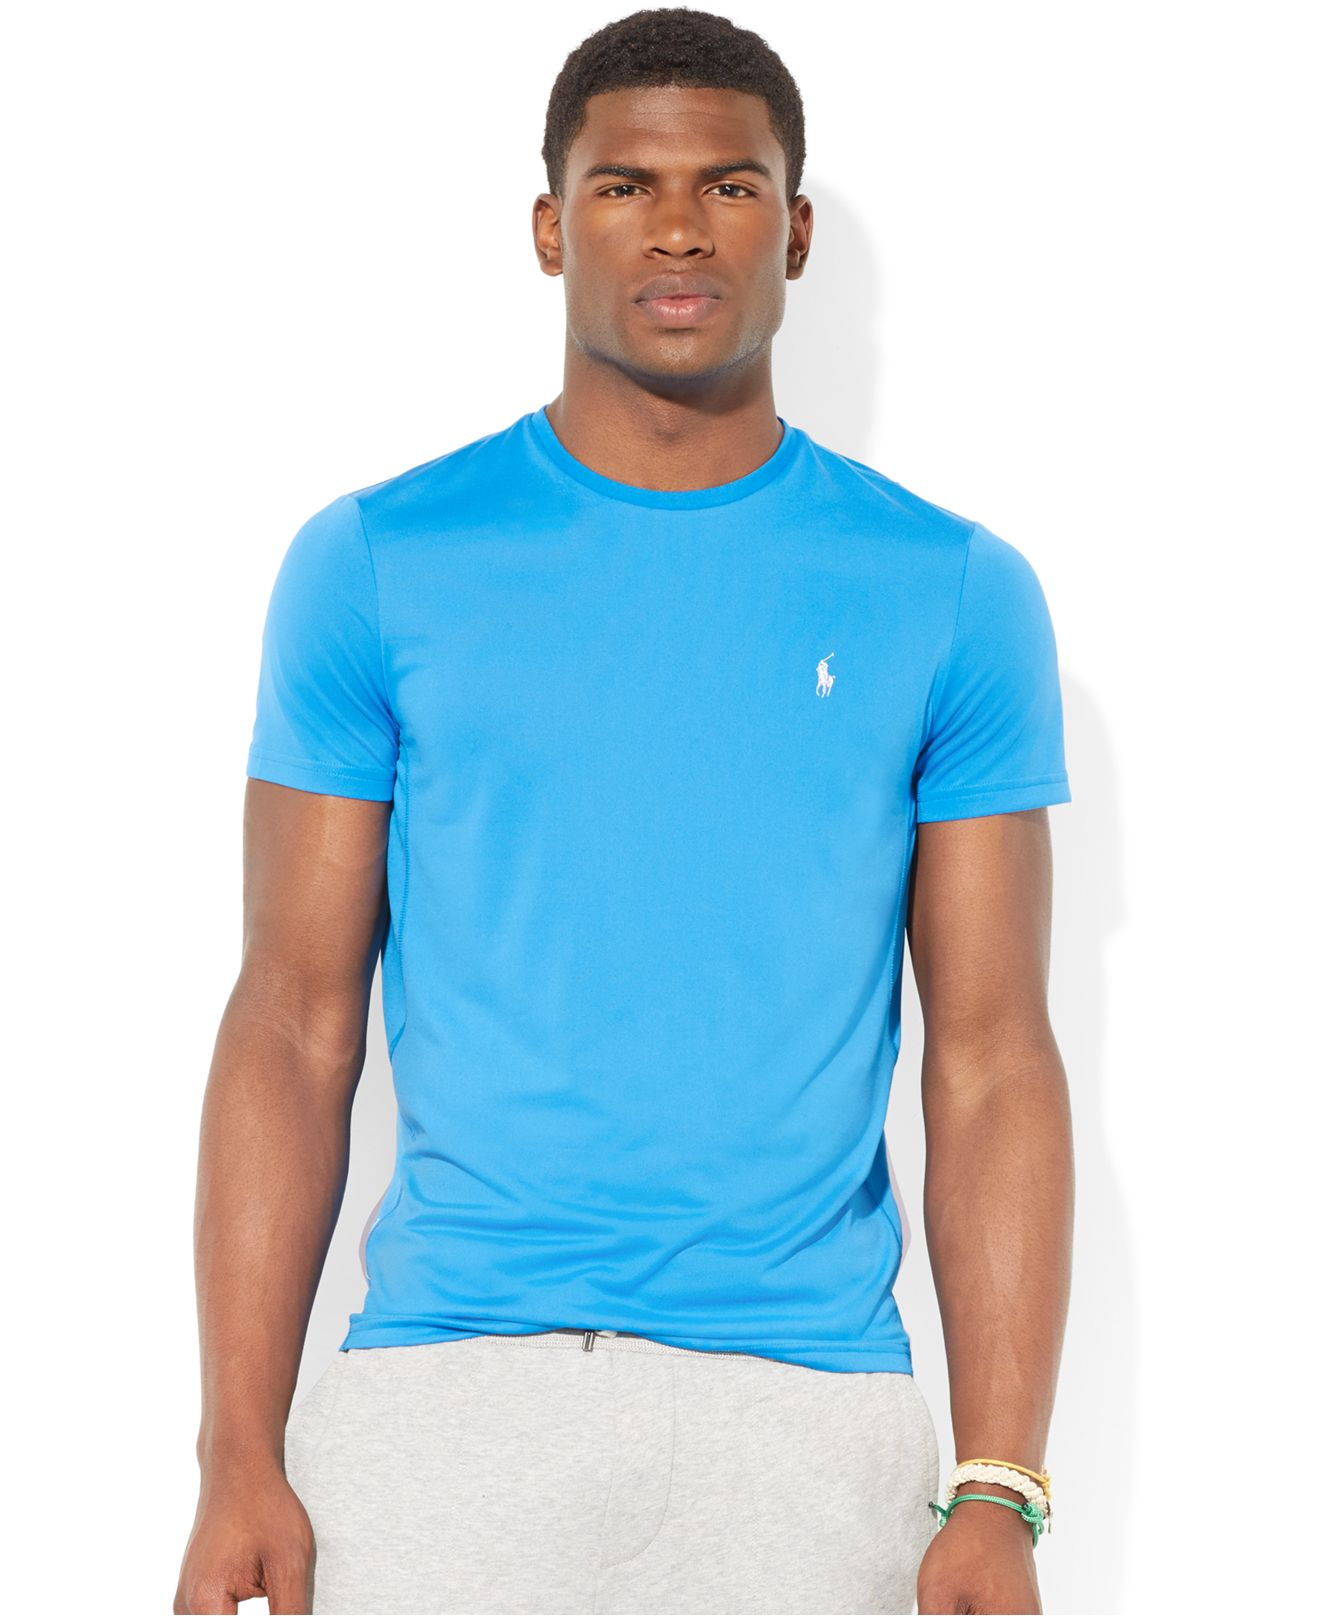 lyst polo ralph lauren performance jersey t shirt in blue for men. Black Bedroom Furniture Sets. Home Design Ideas